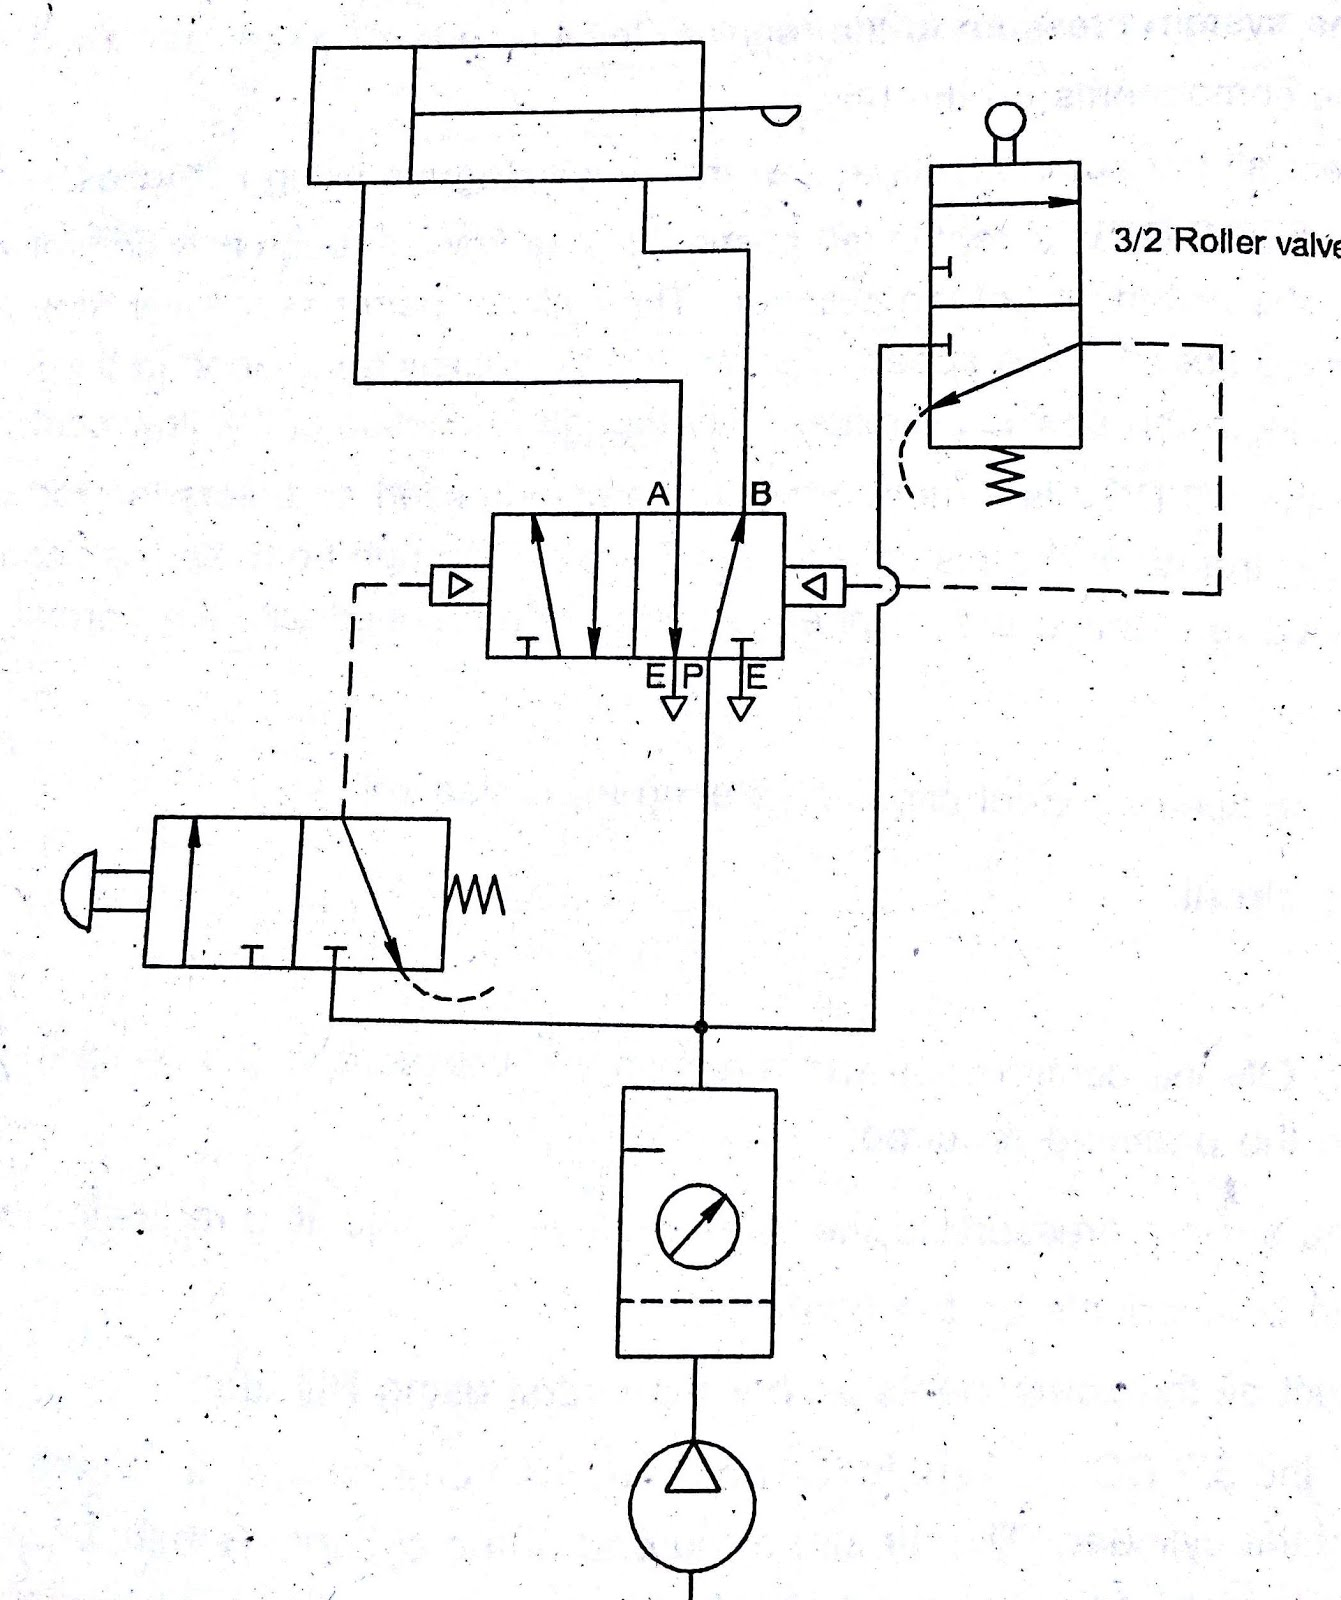 machine drawing  double acting cylinder pneumatic circuit